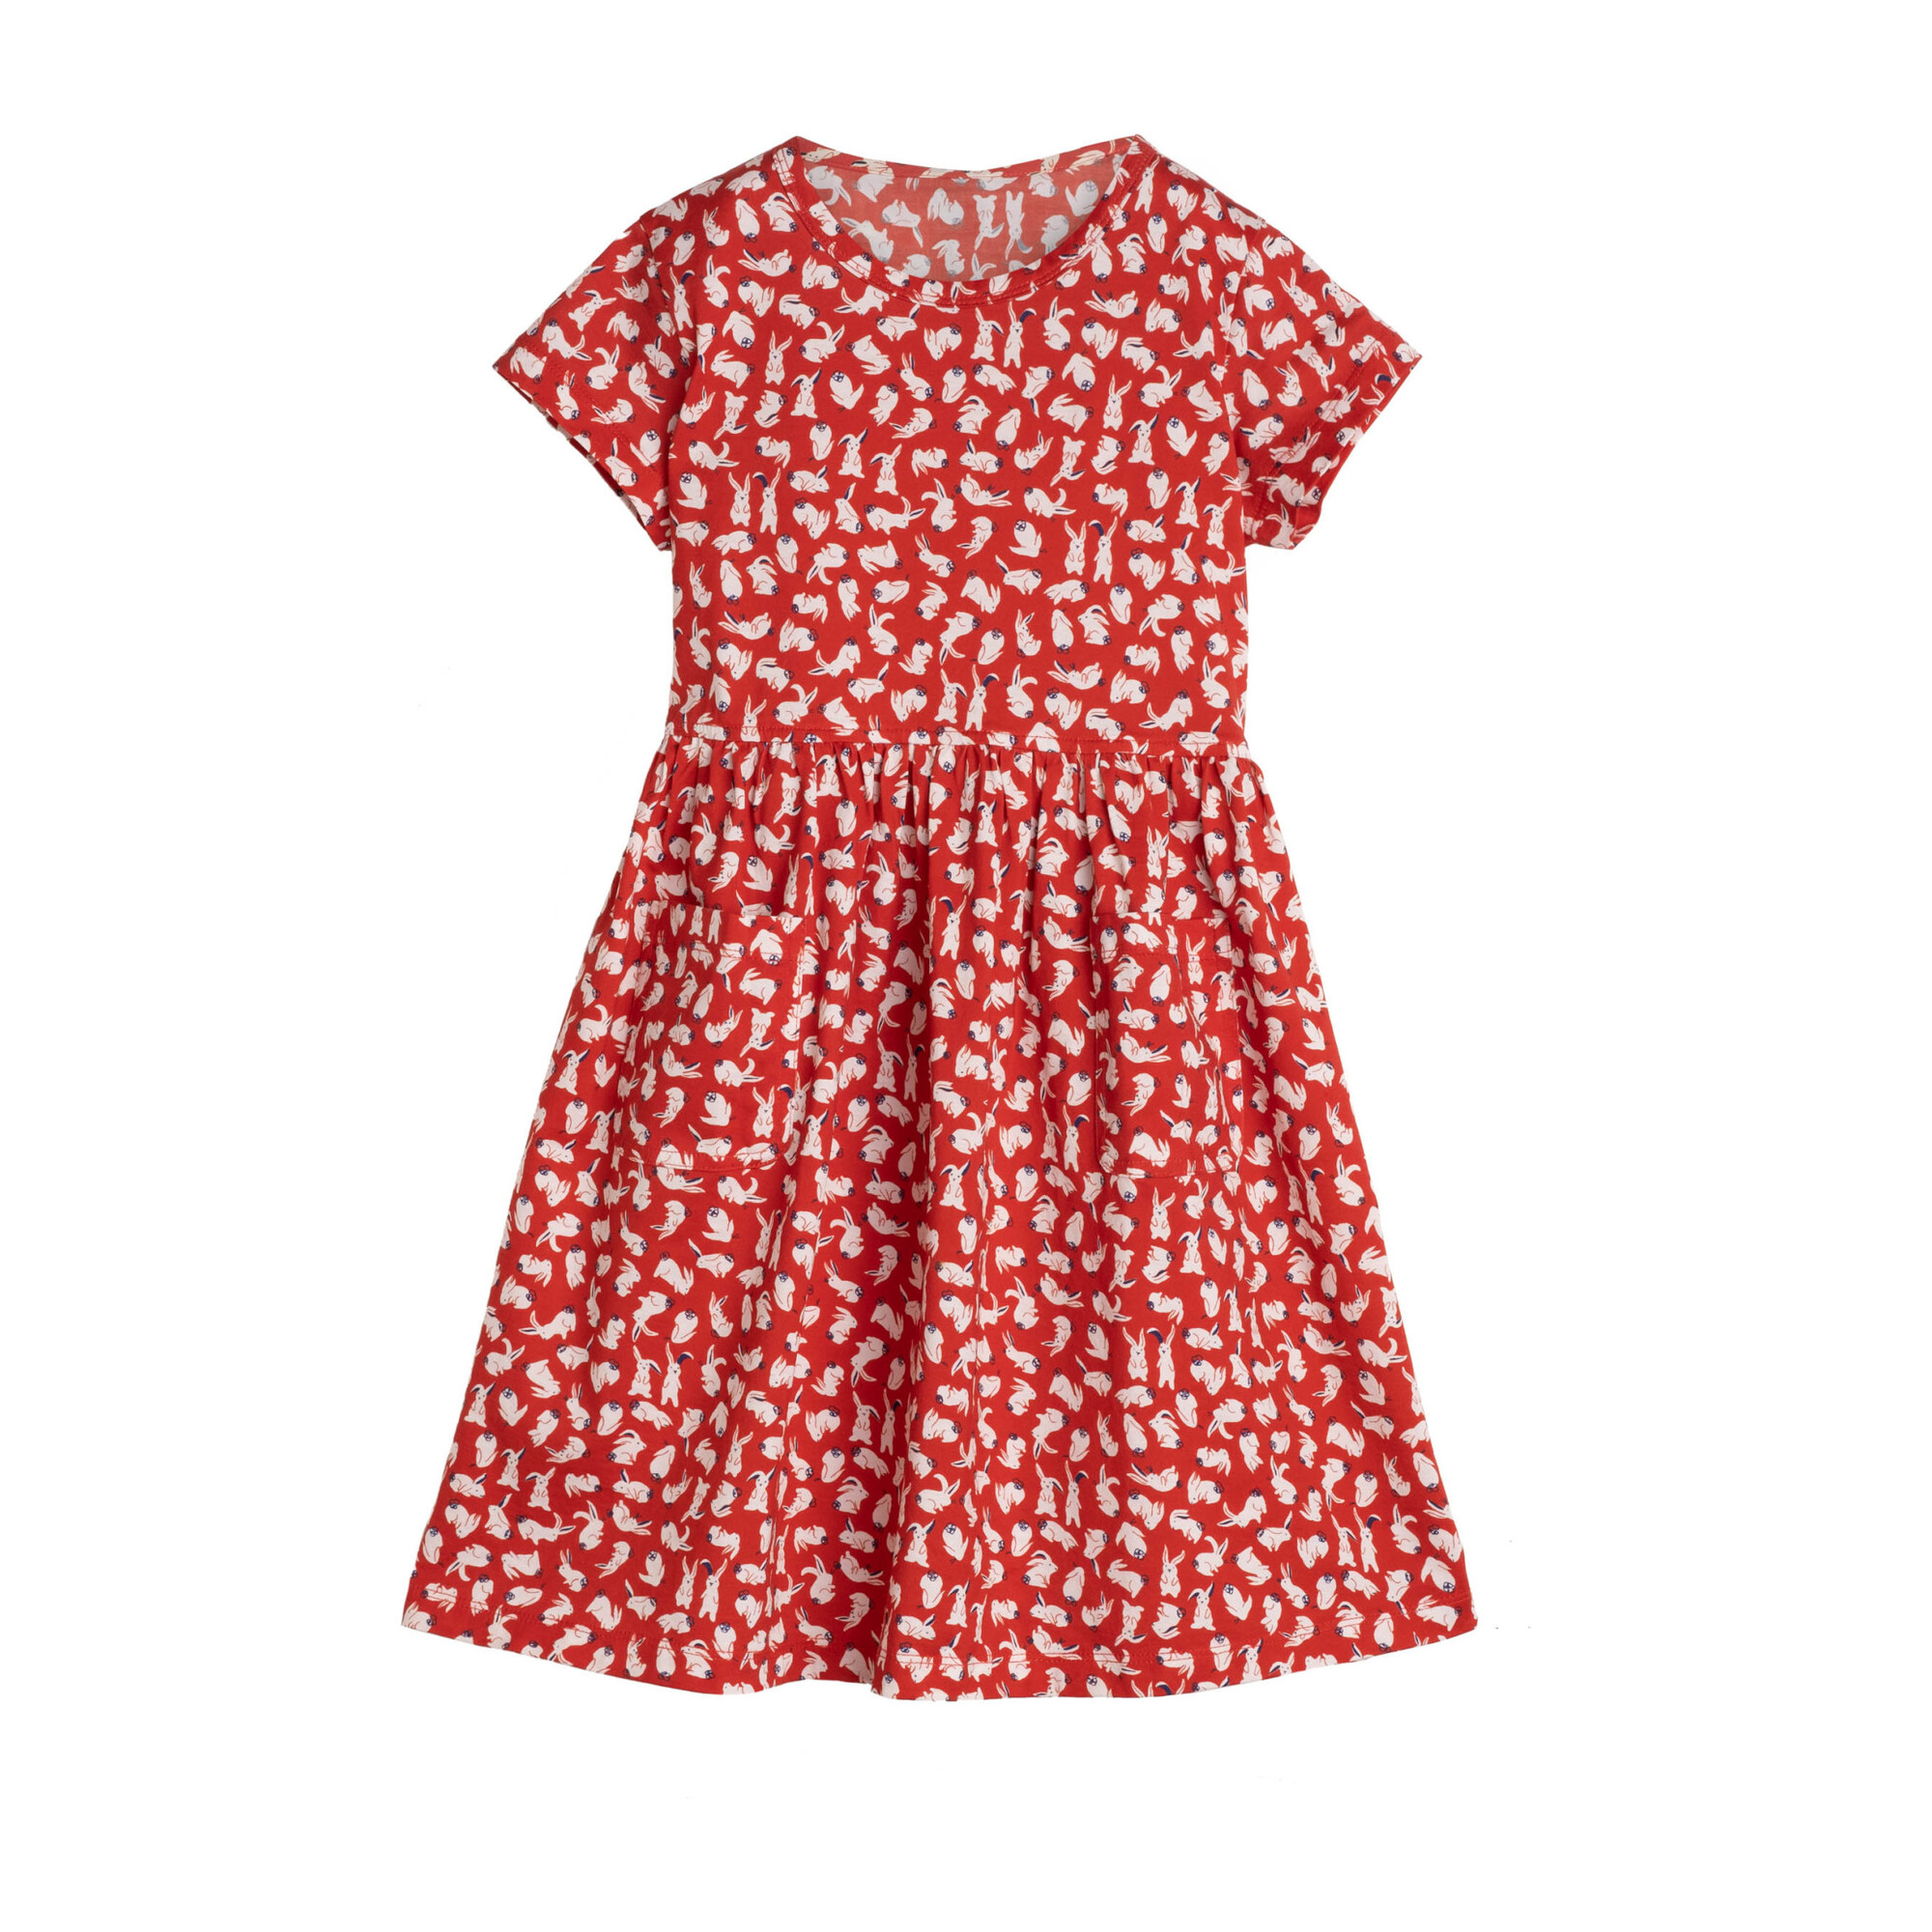 Pippa Jersey Dress, Red Scattered Bunnies